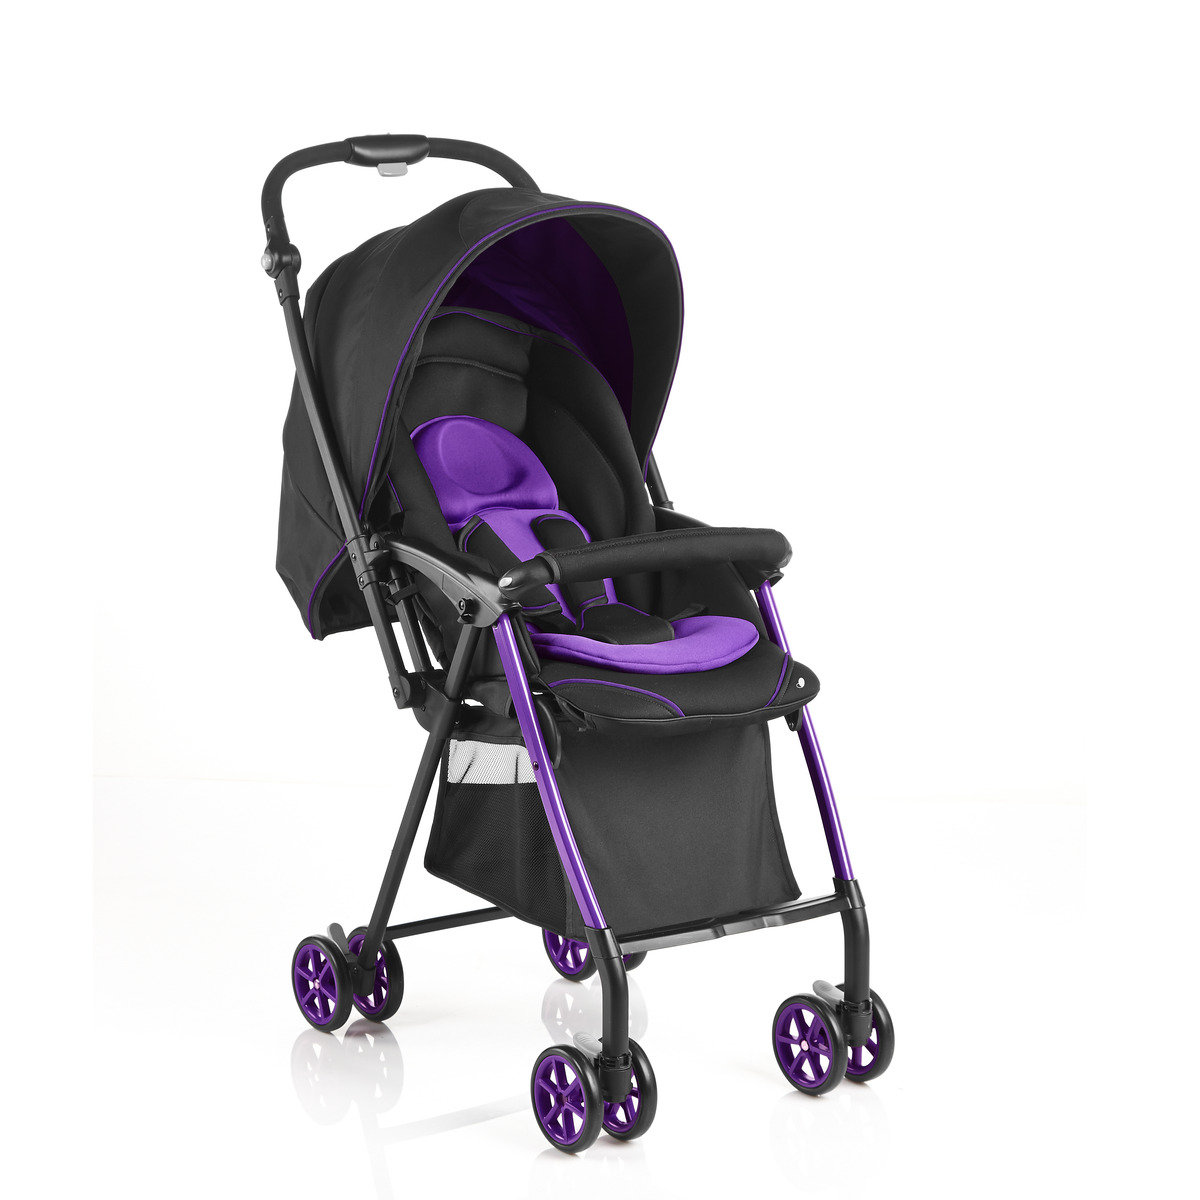 50cm Seat Height Reversible Handle Baby Stroller - Black Purple